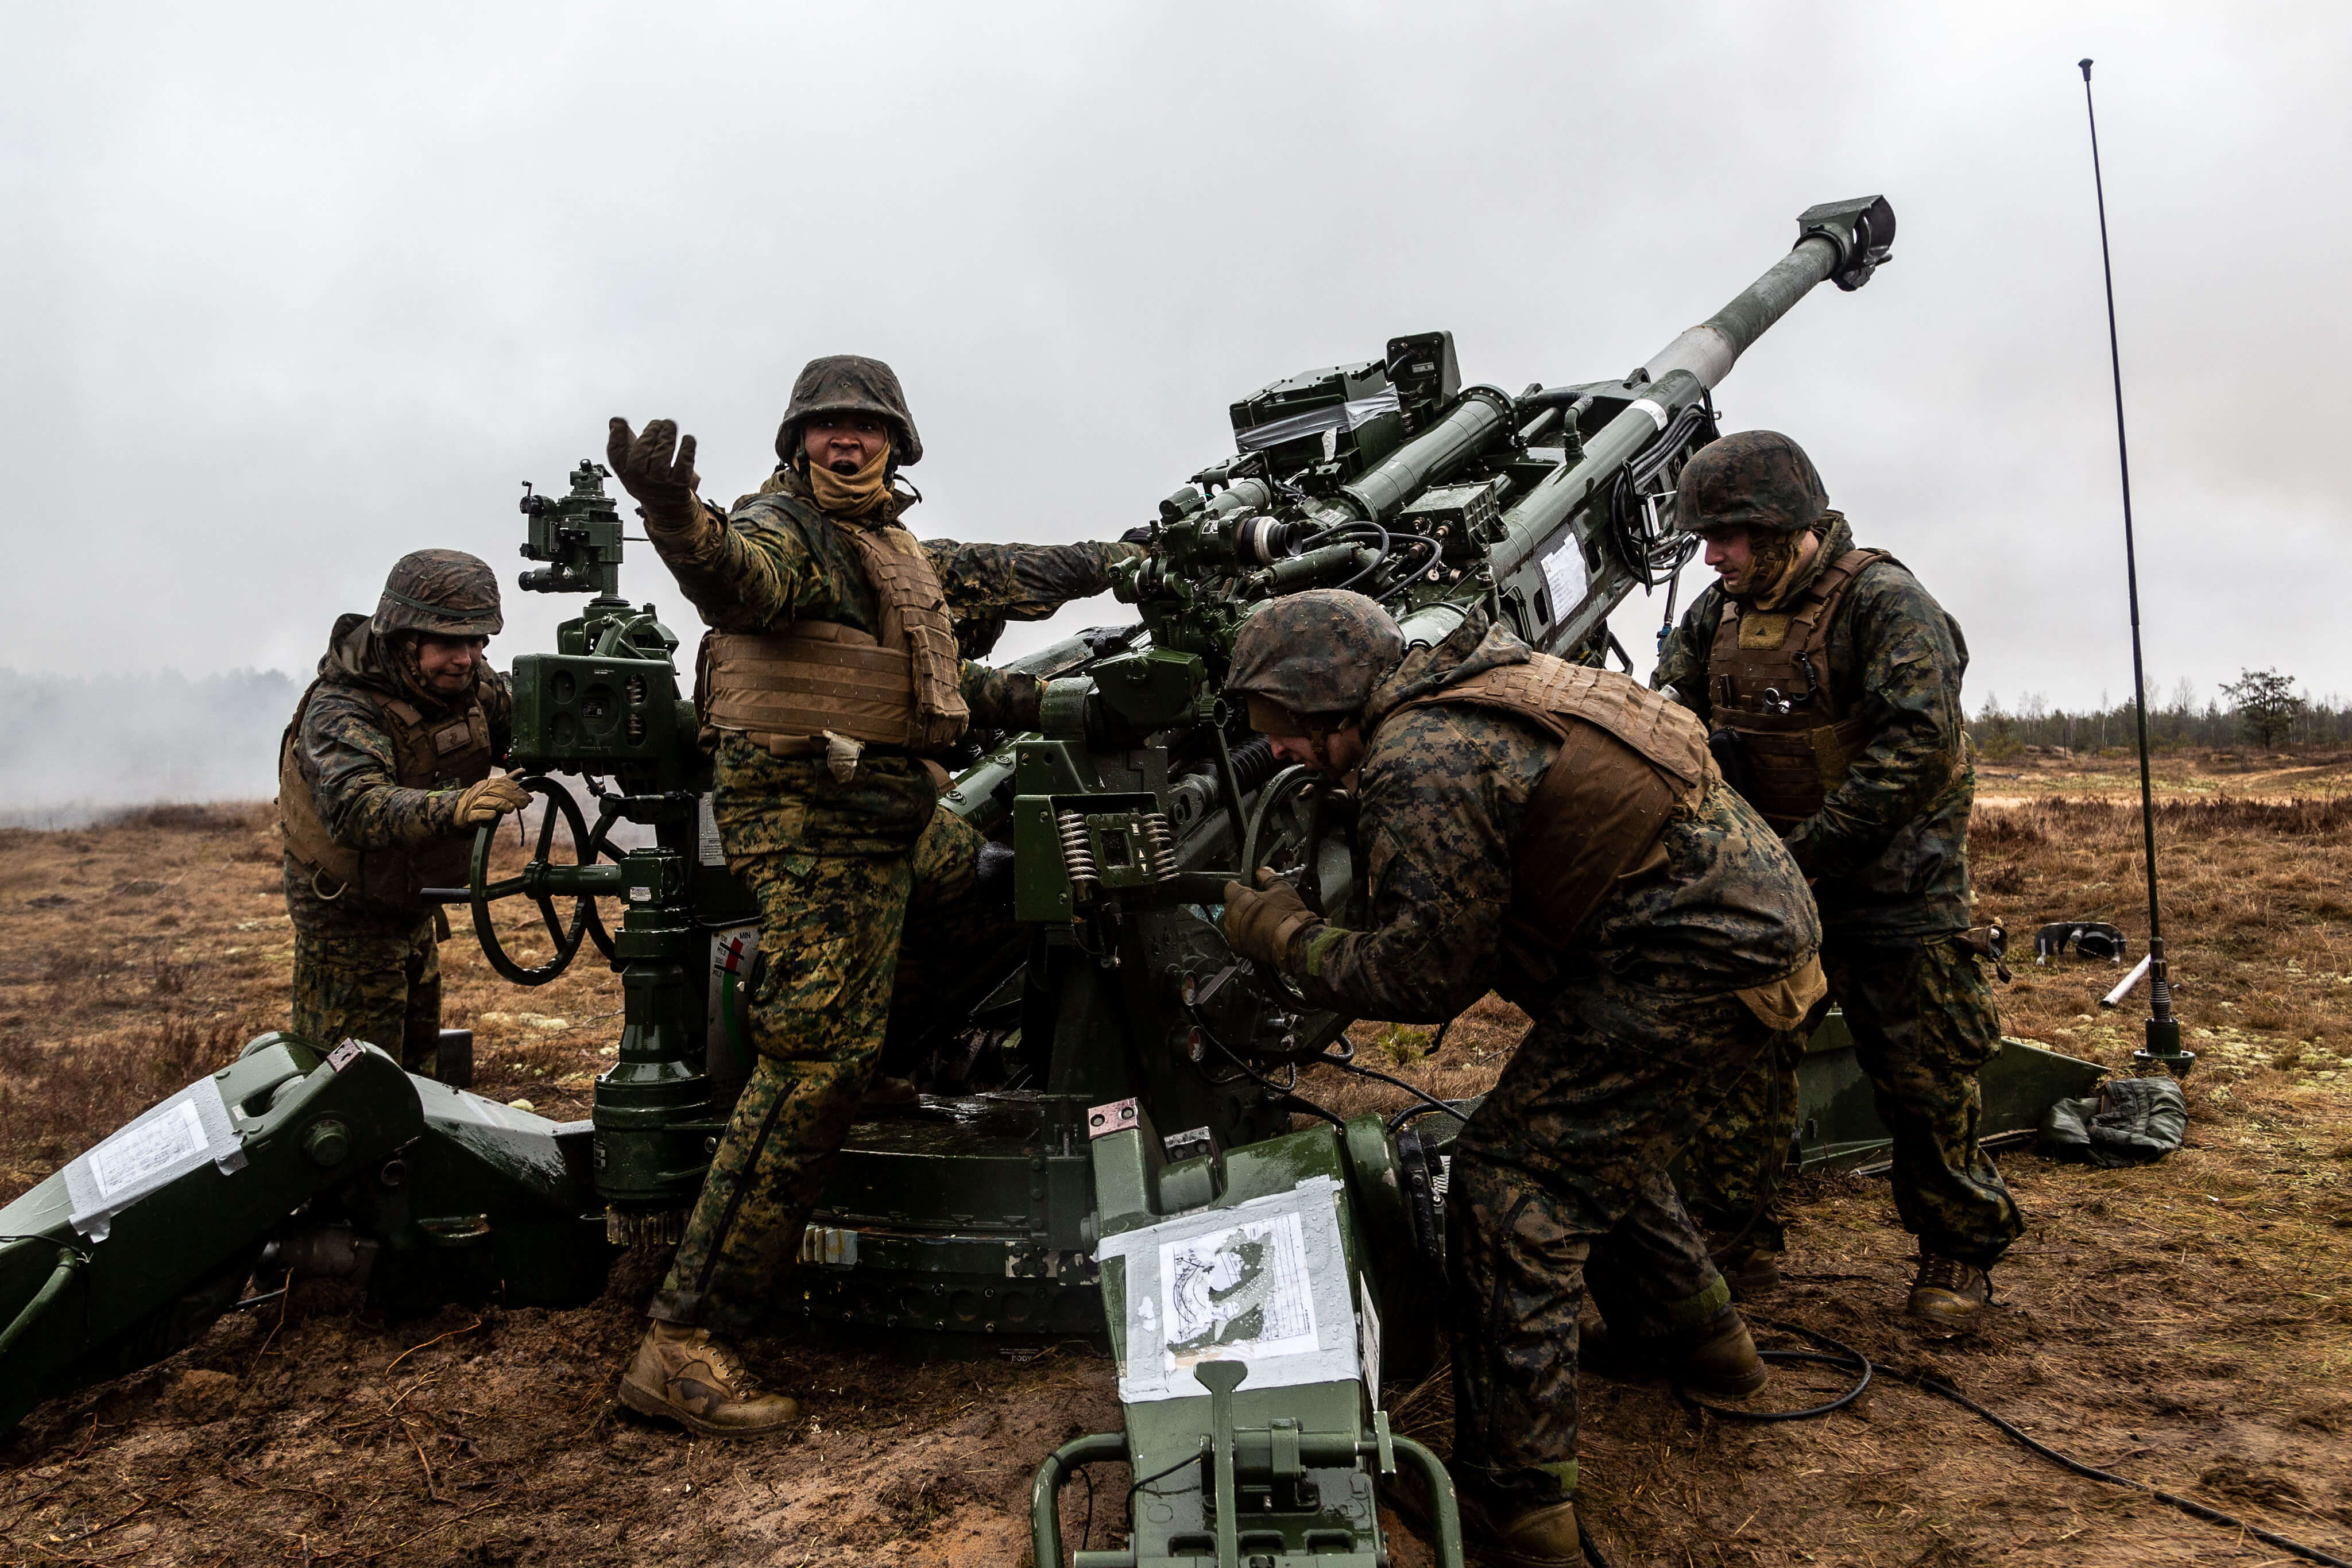 US Marines prepare to fire their M777 howitzer during Exercise Dynamic Front 2019 at Adazi Training Grounds in Latvia. © NATO/Flickr